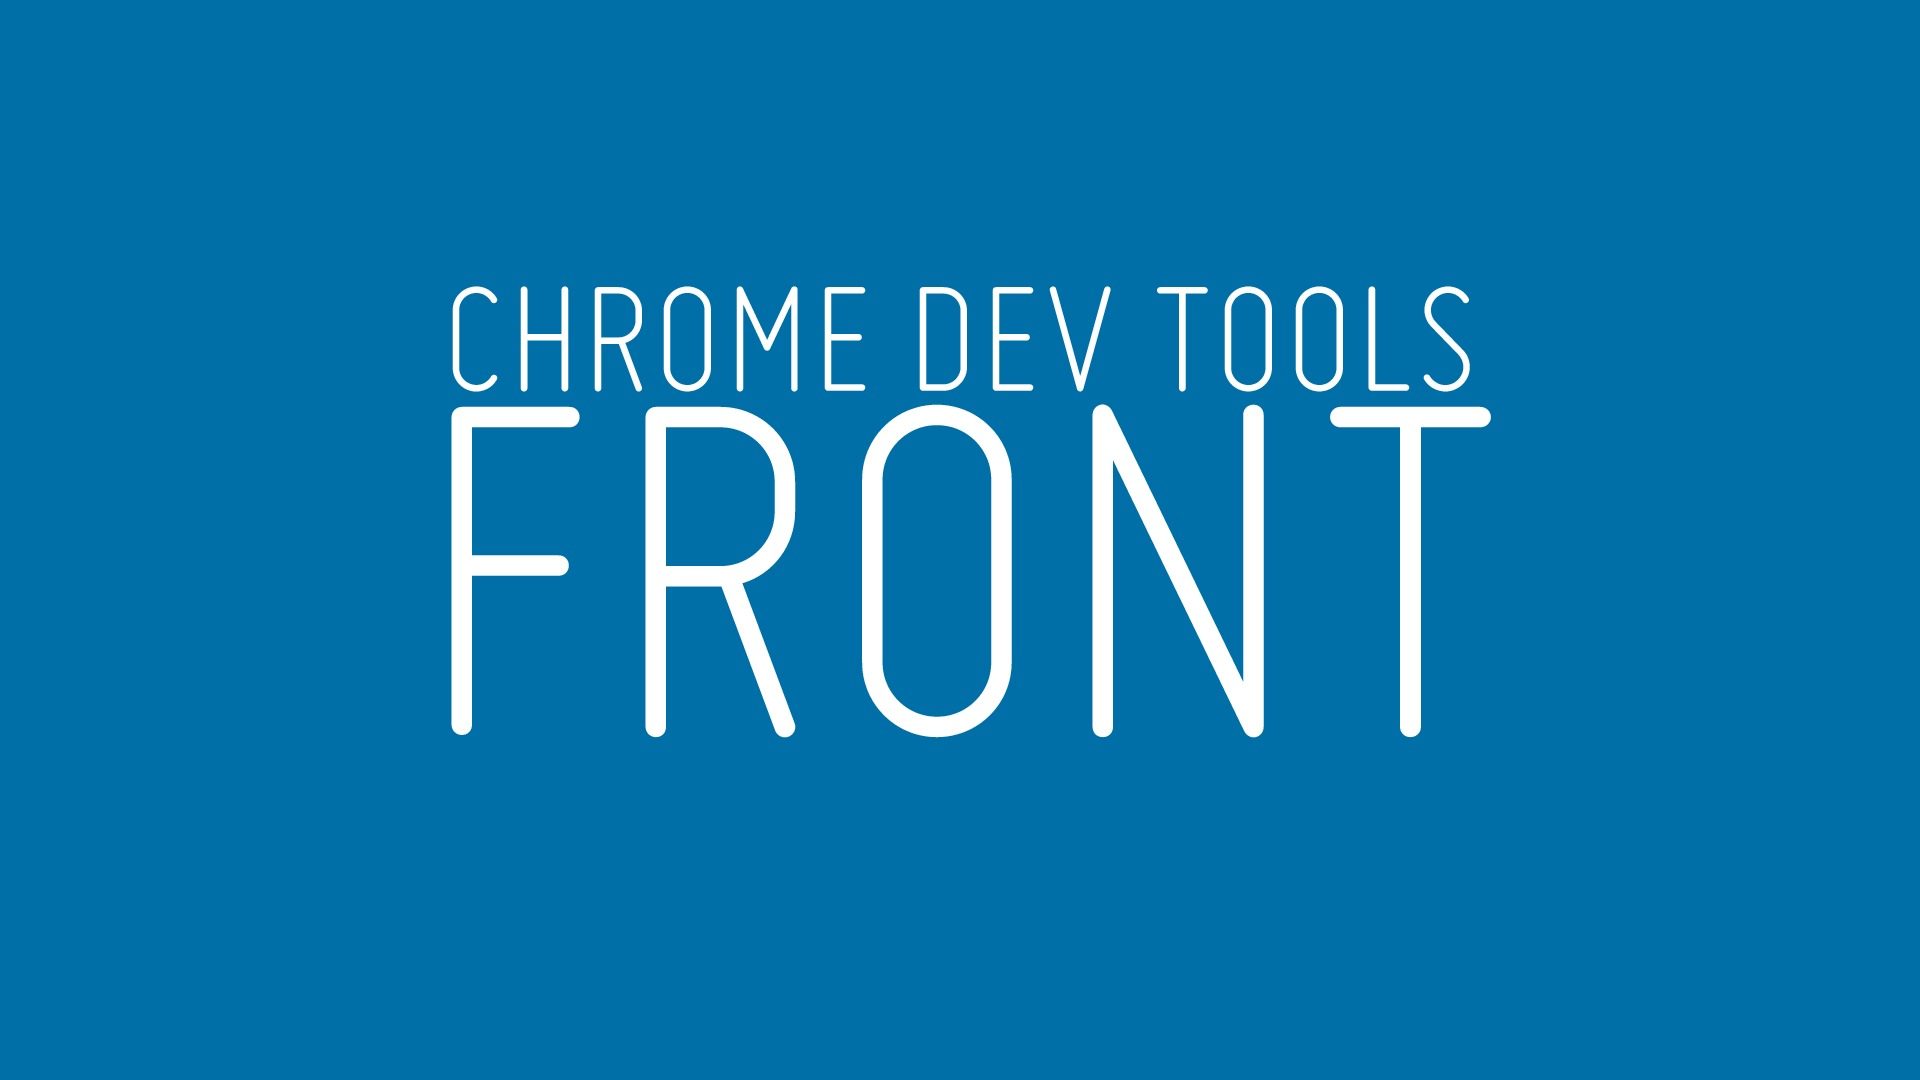 Chrome DevTools: Front to Back